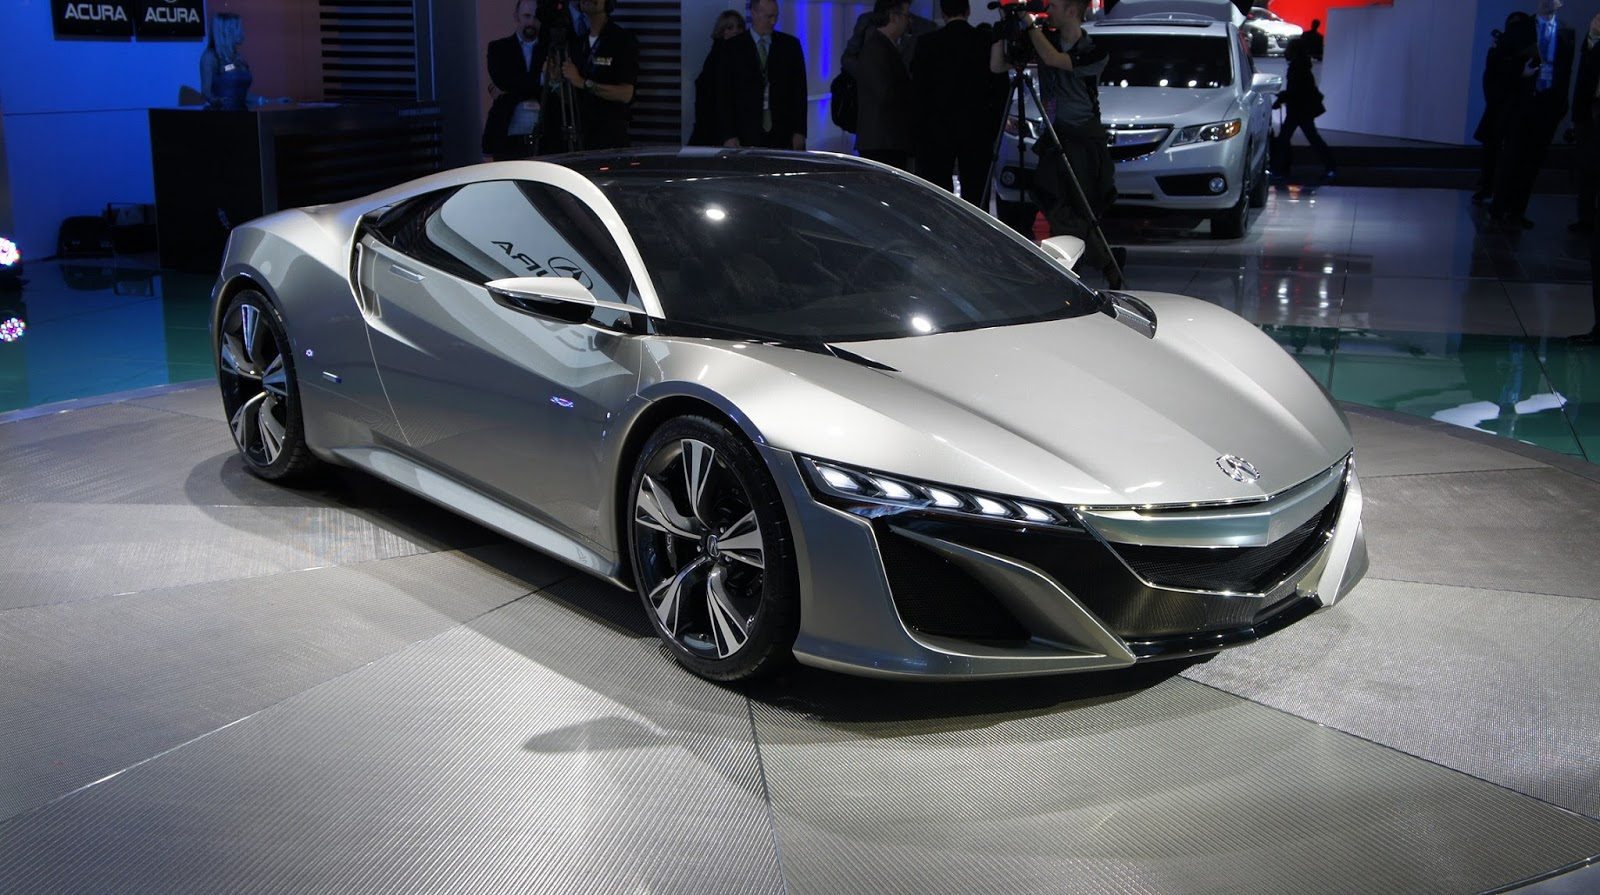 2016 Acura NSX Roadster with Hybrid Powertrain